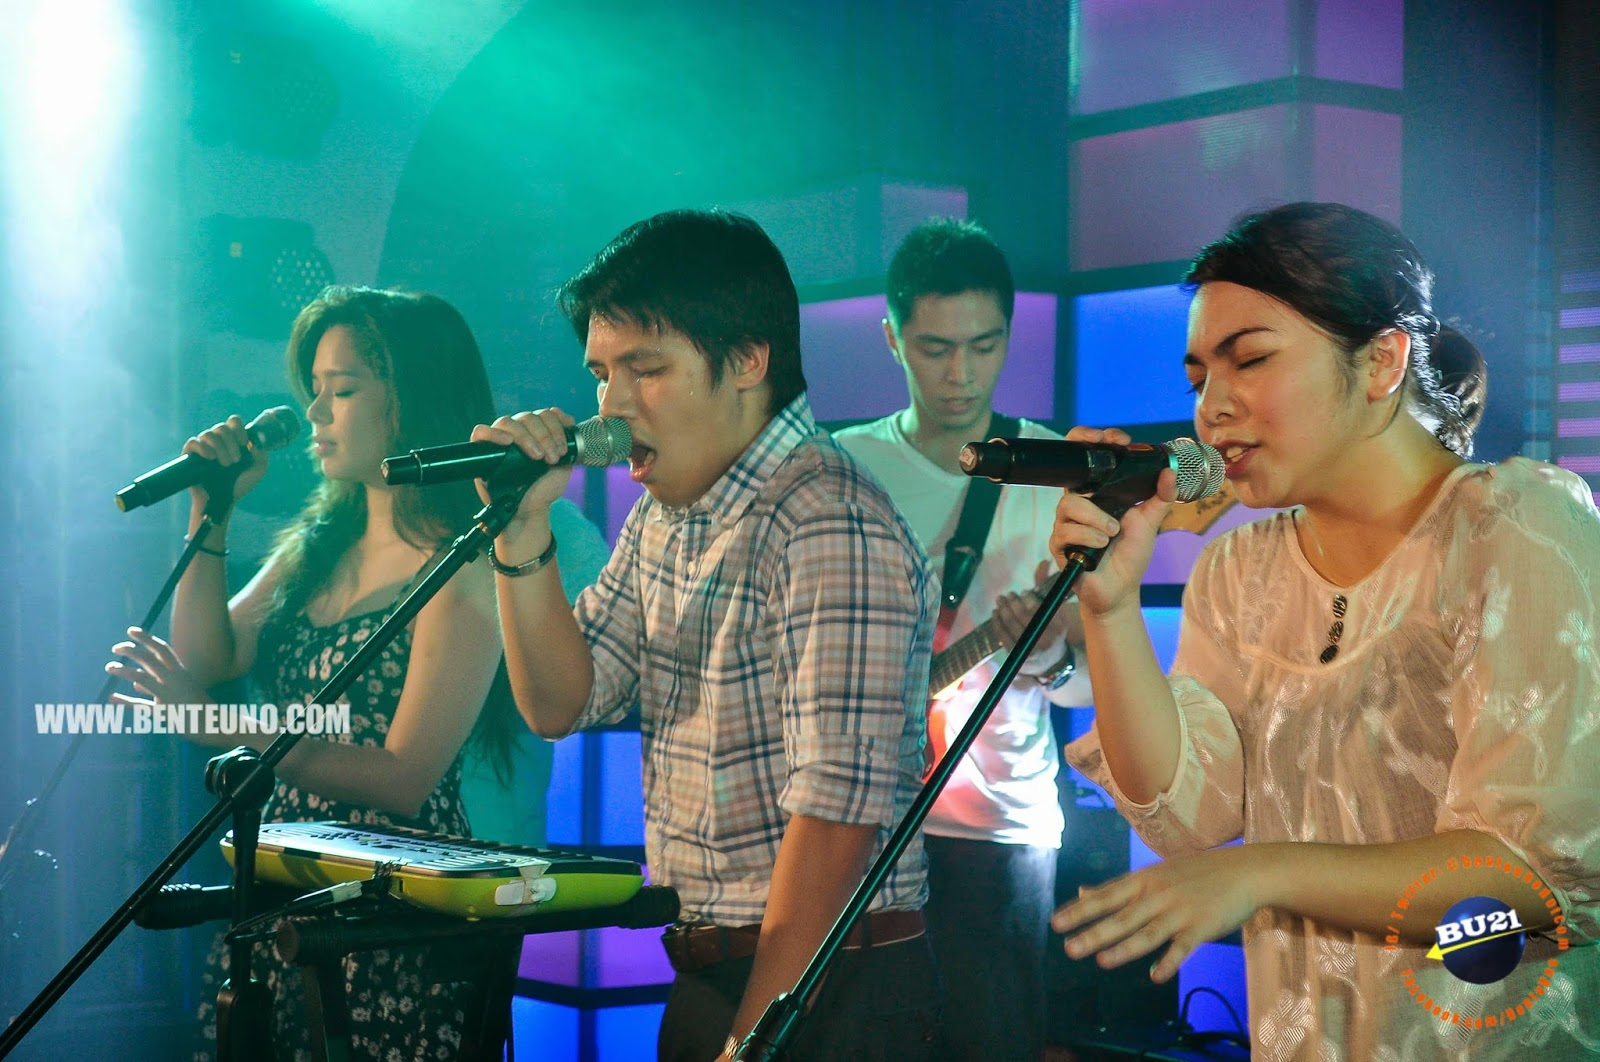 CHEATS nominated for Best Emerging Band of 2014 on Yahoo Celebrity Awards